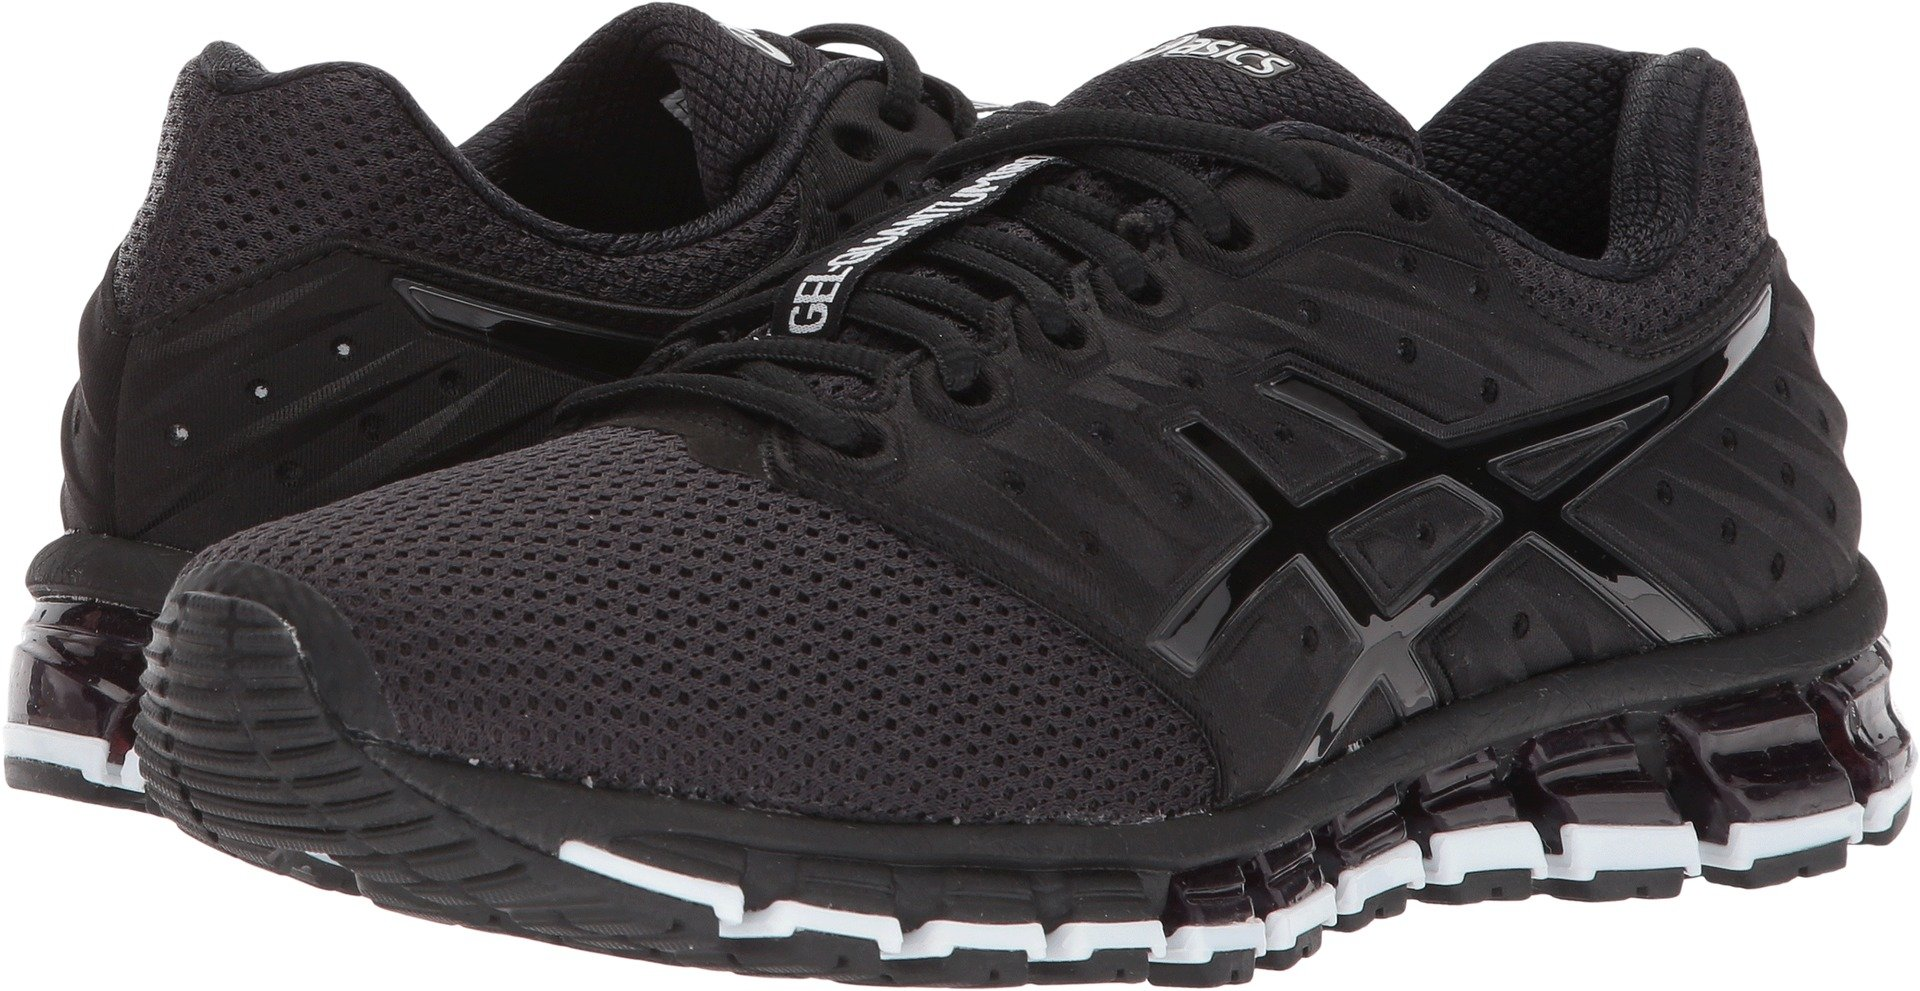 Asics Womens Gel-Quantum 180 2 MX Running Shoes Phantom/Black/White 7.5 B(M) US by ASICS